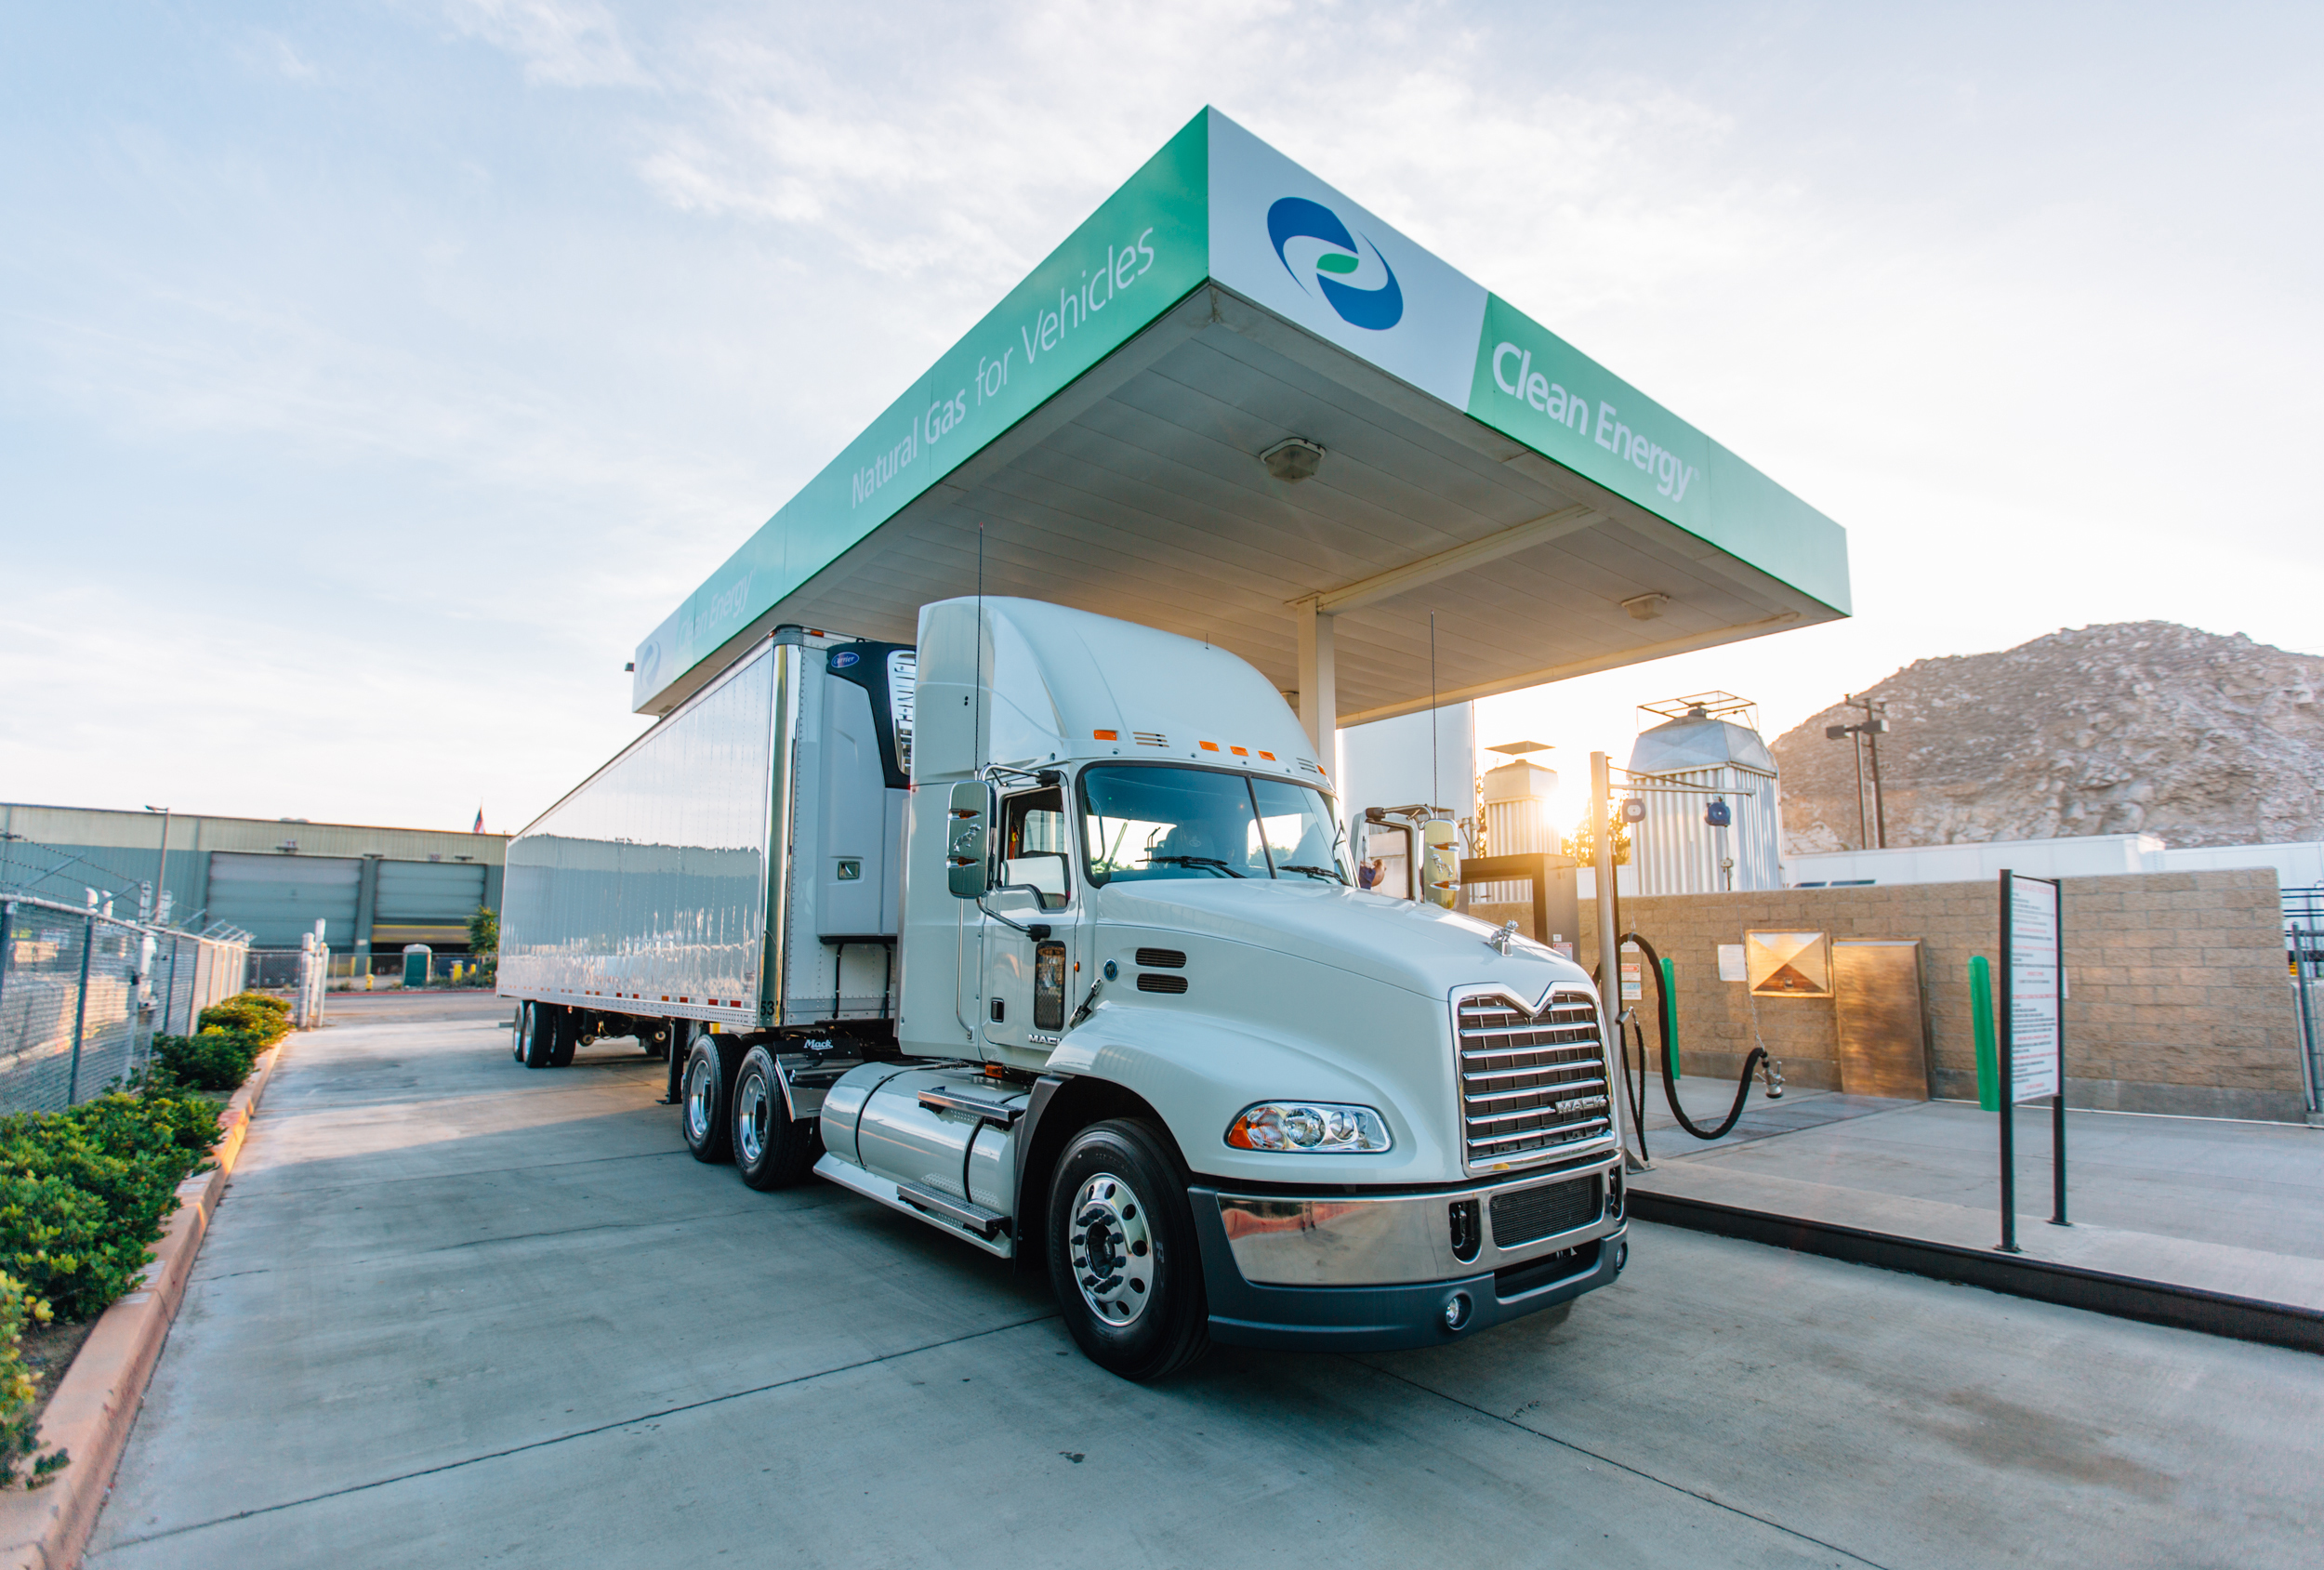 Clean Energy Announces New Station Construction and Renewable Natural Gas  Fuel Contracts for Refuse, Transit, Trucking and Municipal Customers |  Business WireBusiness Wire